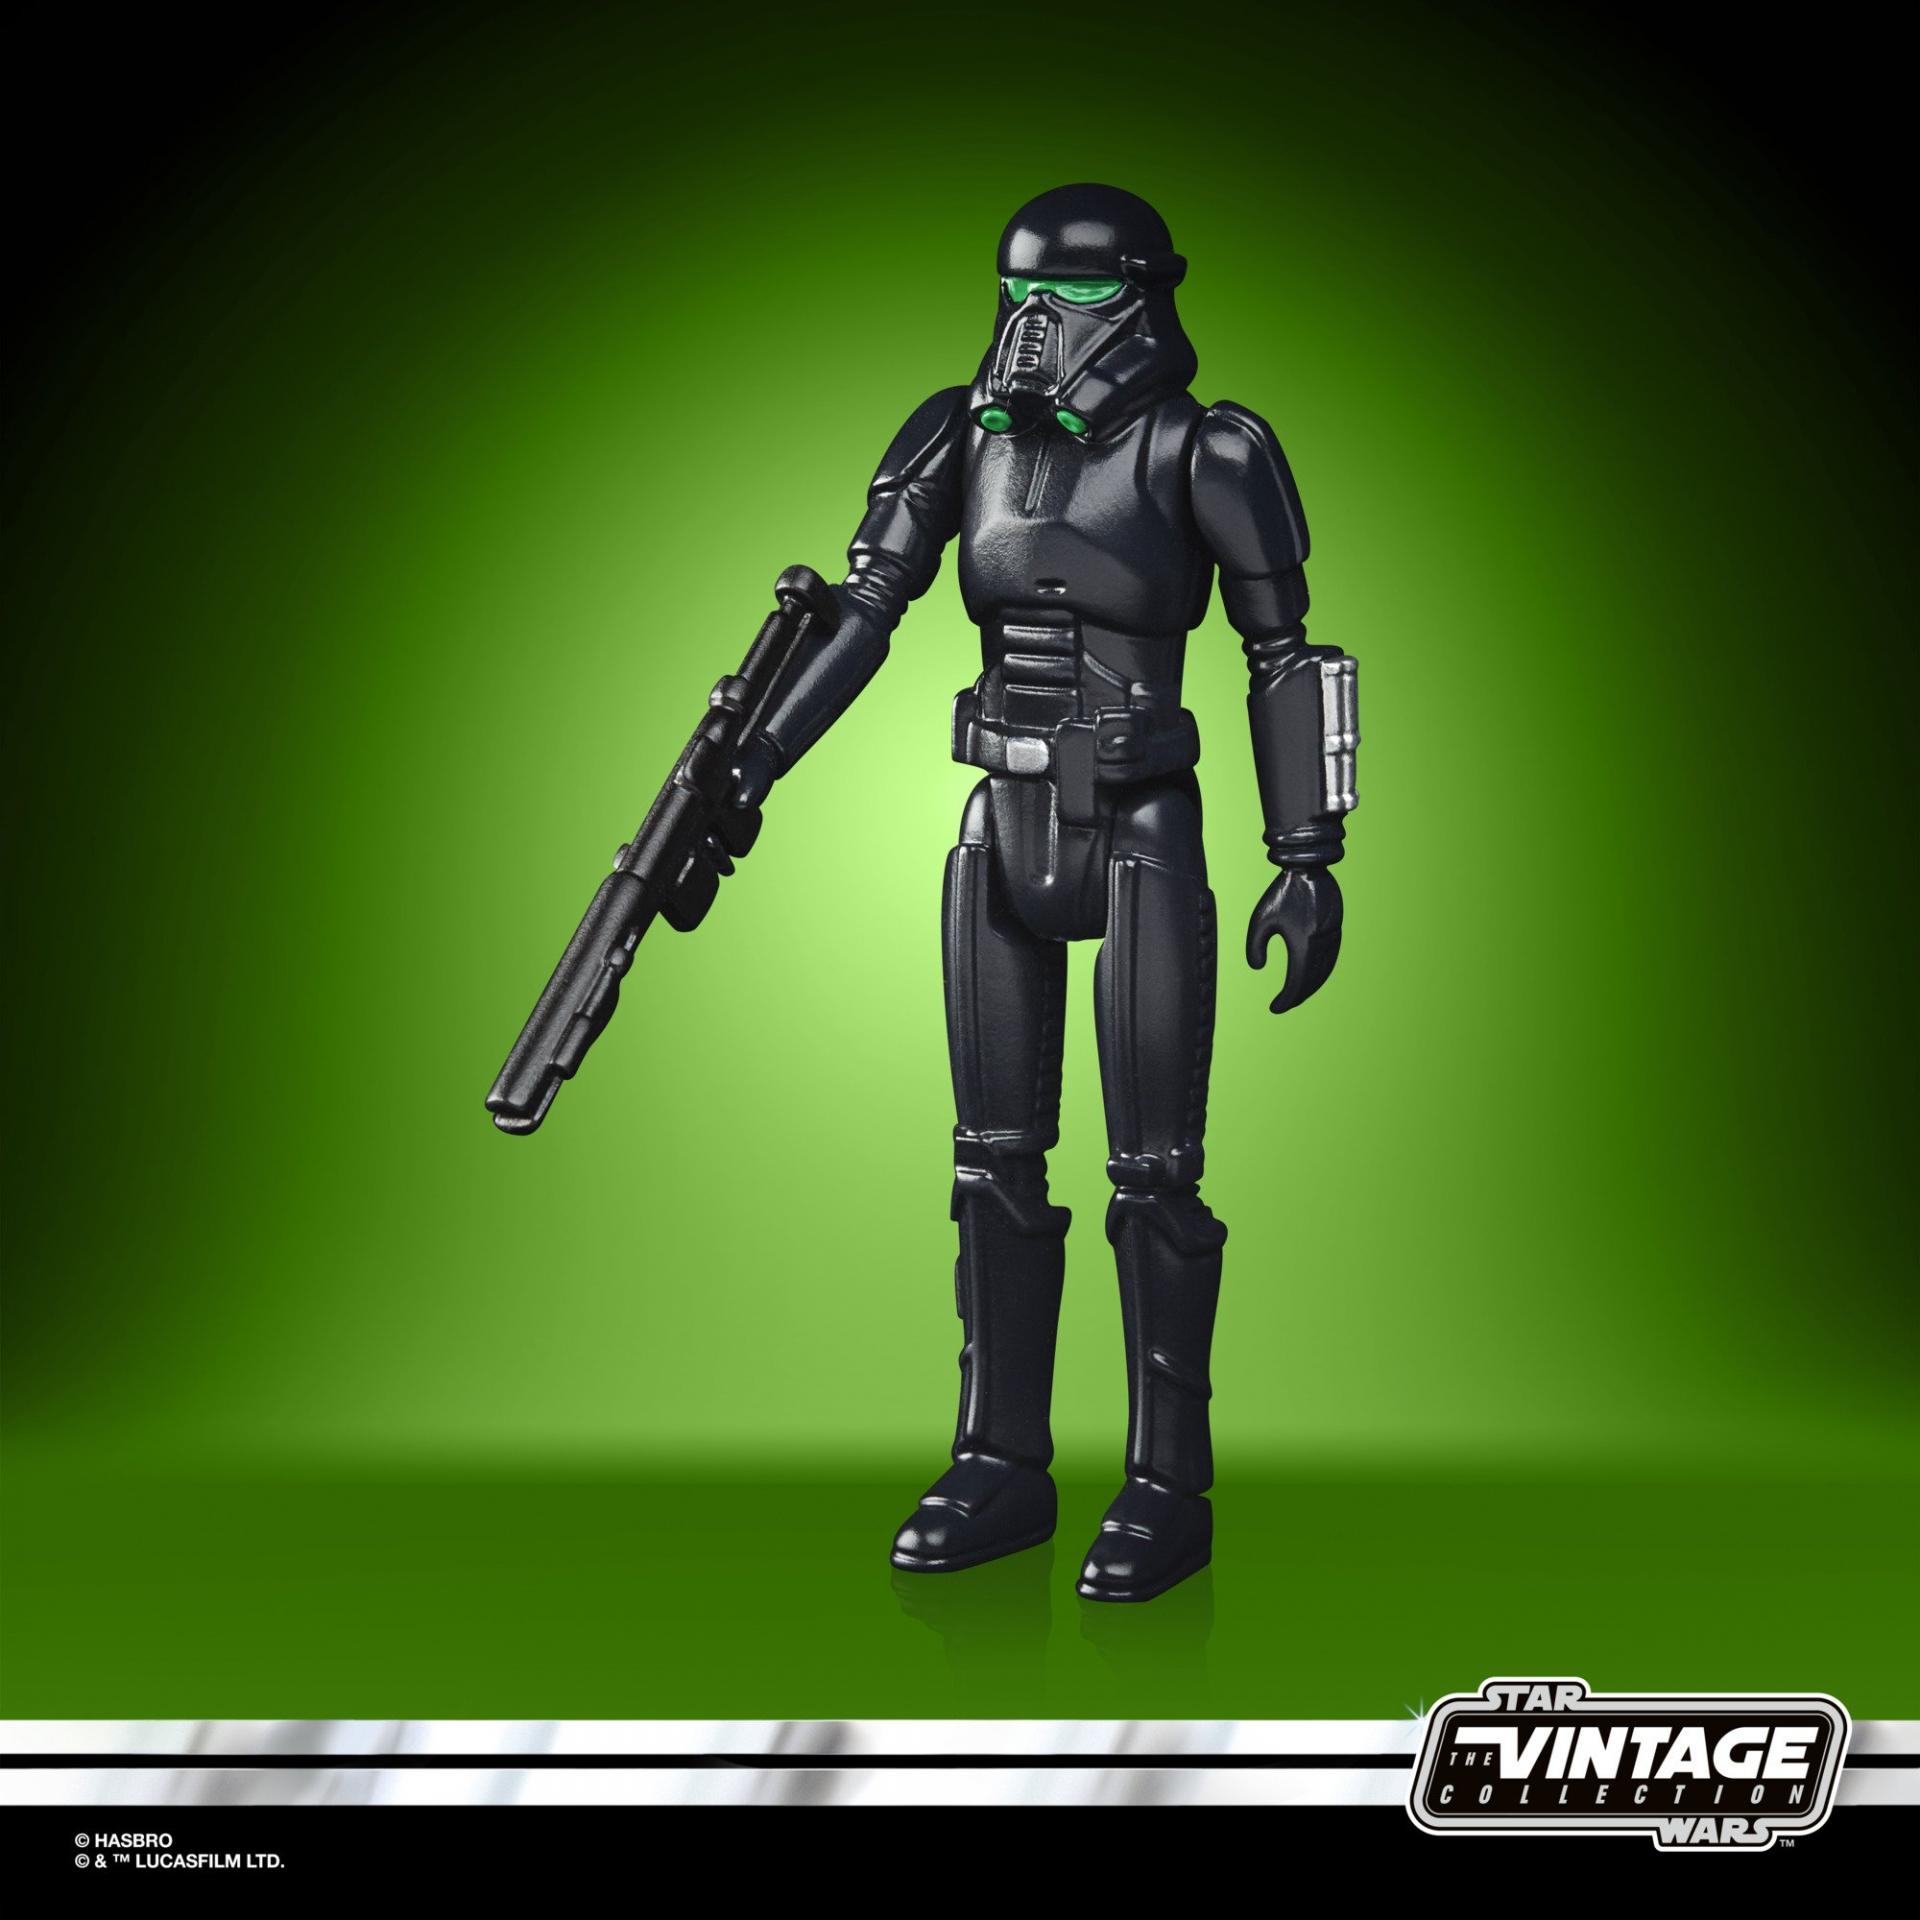 Tar wars the retro collection the mandalorian imperial death trooper2